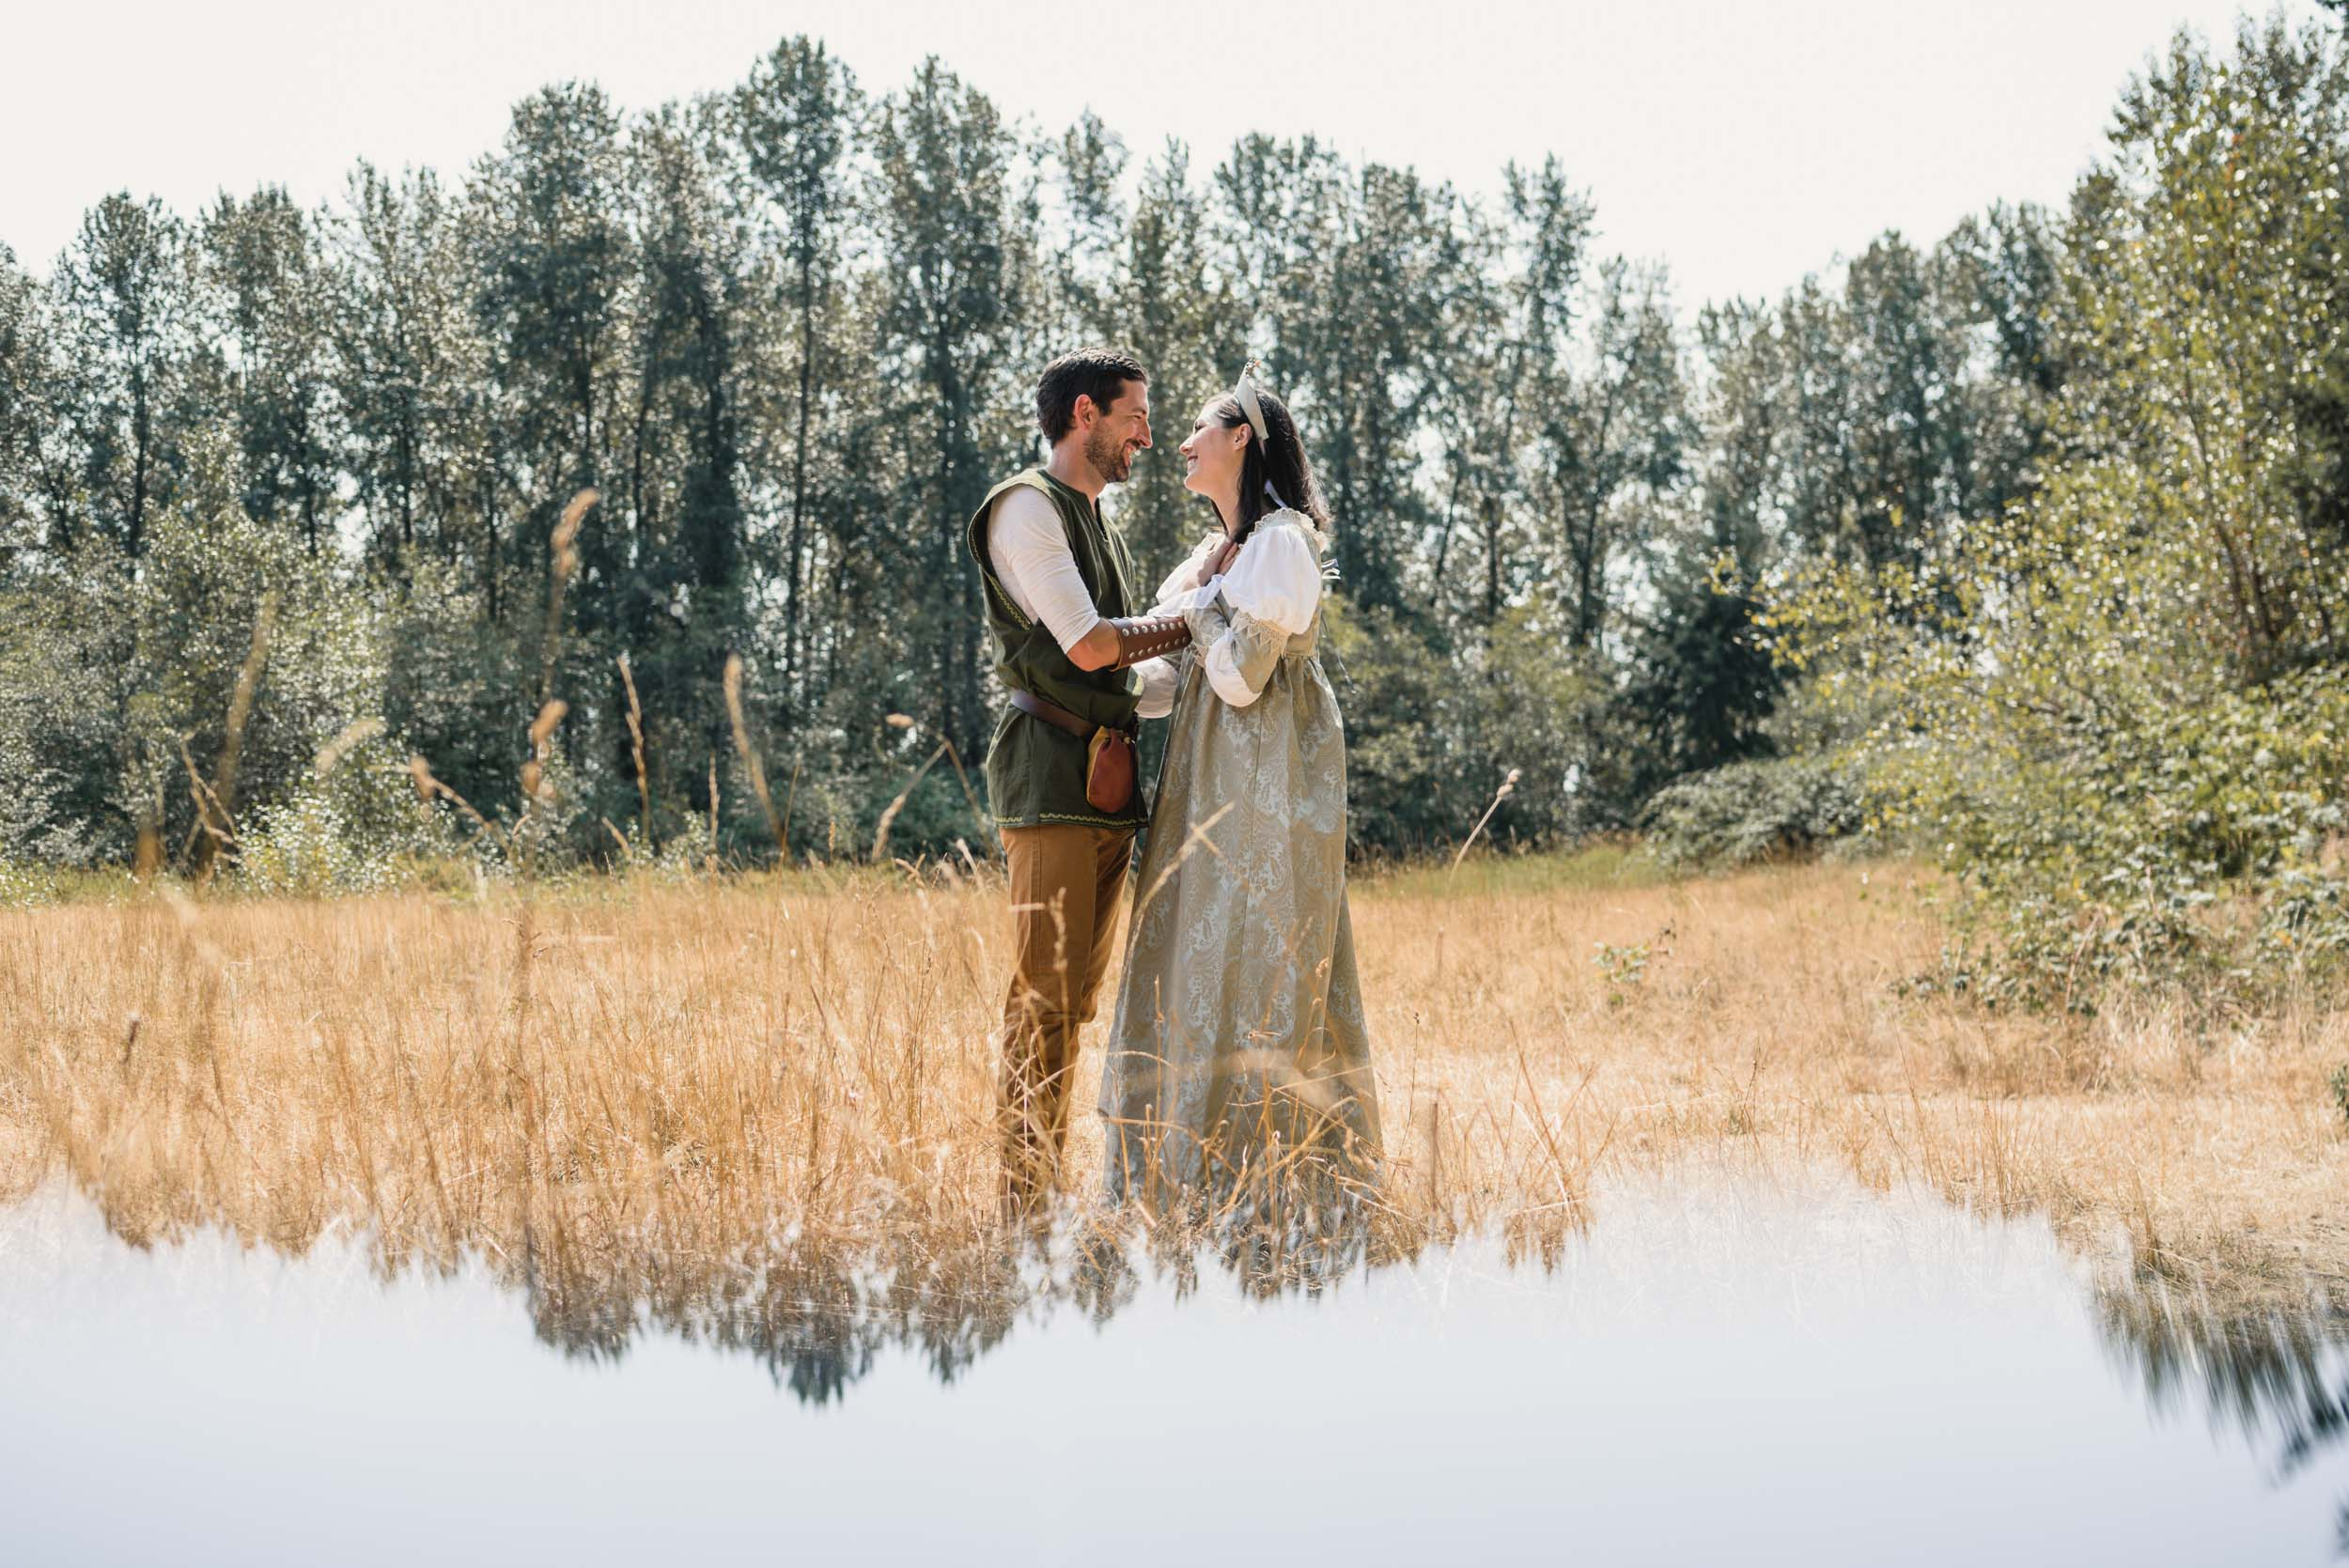 Couple facing each other in field with medieval costumes